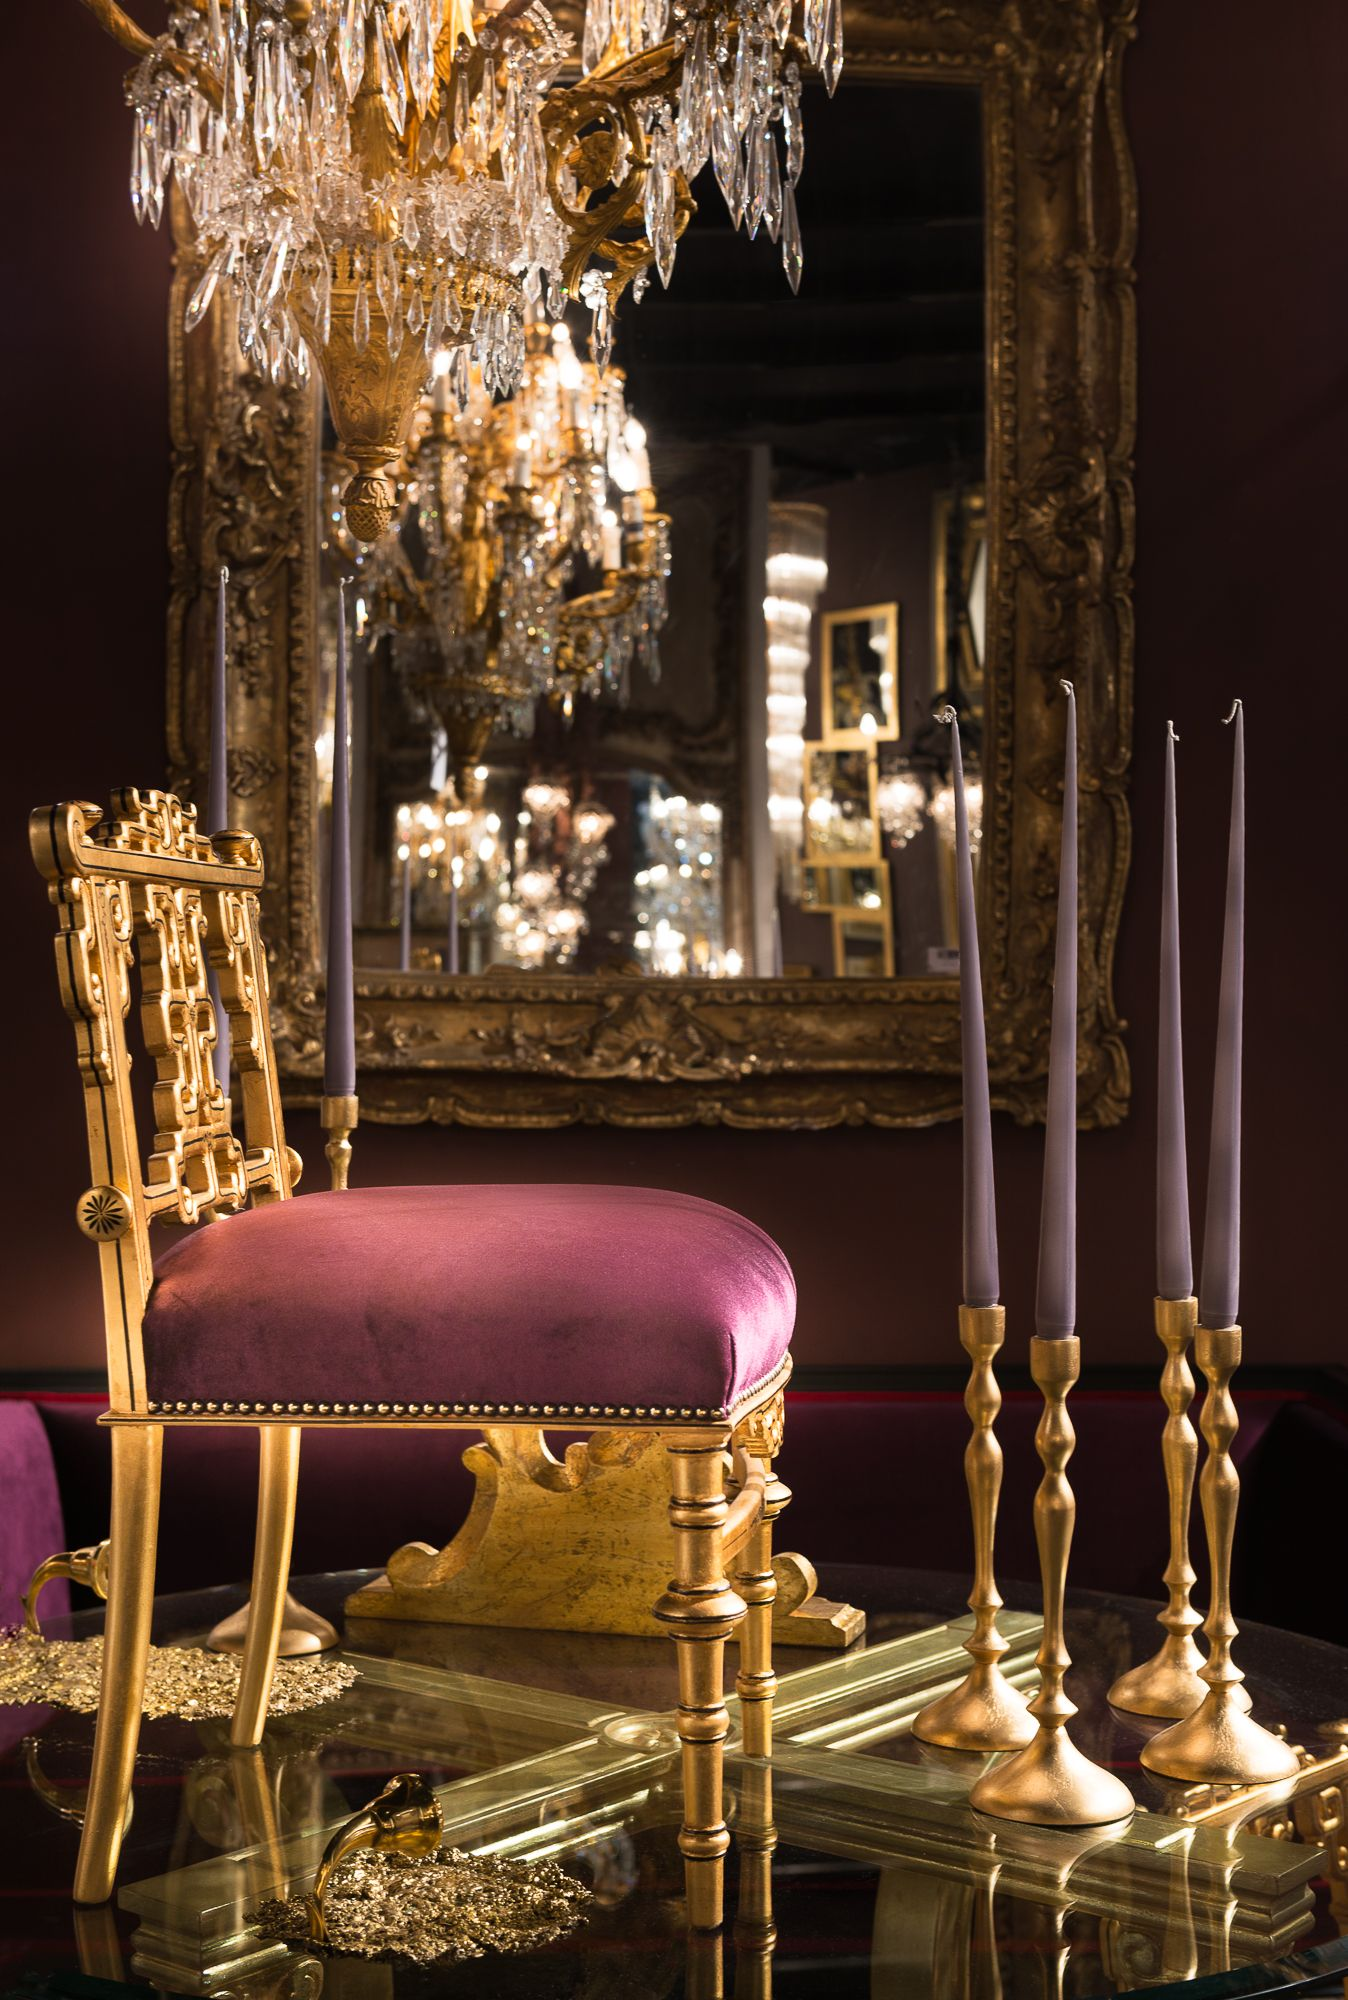 mis en demeure paris courtesy maison objet maison creative pinterest decorative accents. Black Bedroom Furniture Sets. Home Design Ideas